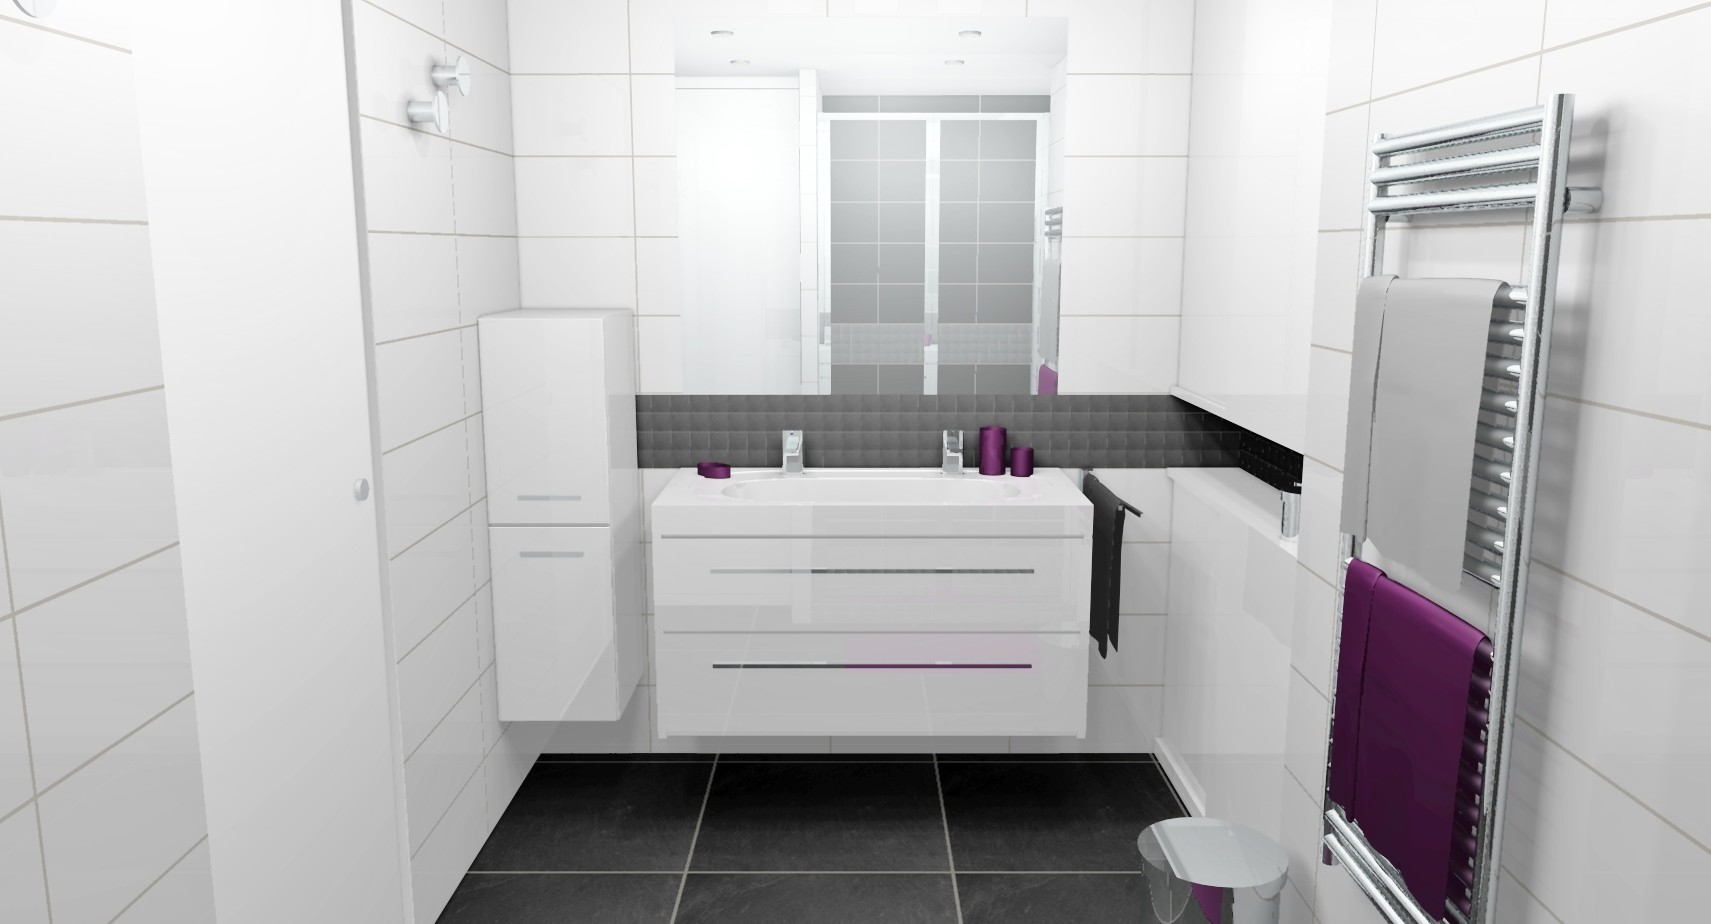 Amenagement salle de bain 7m2 fashion designs for Chambre 7m2 amenagement